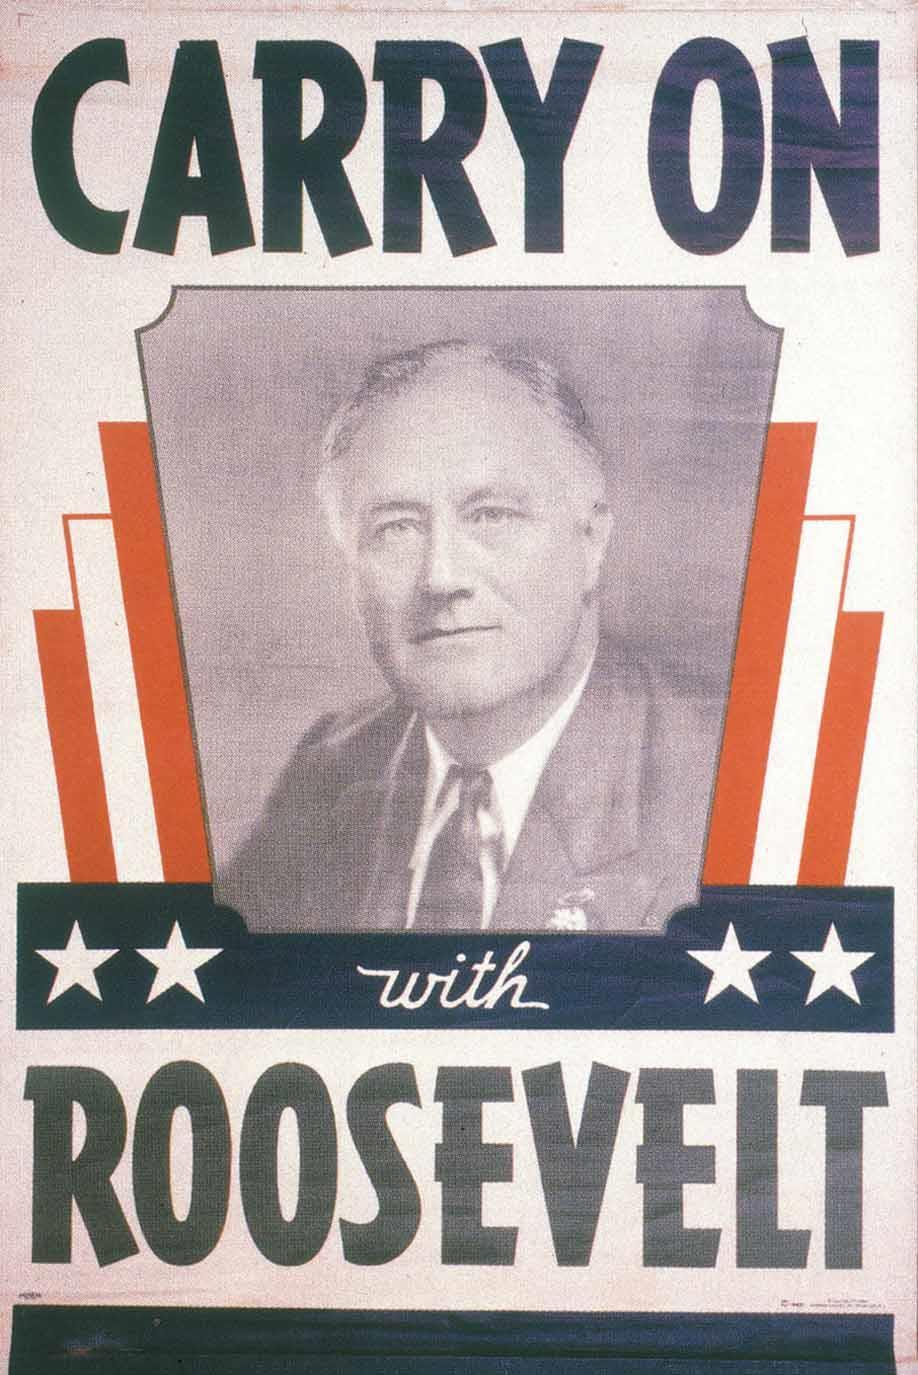 The Roosevelt realignment 8.